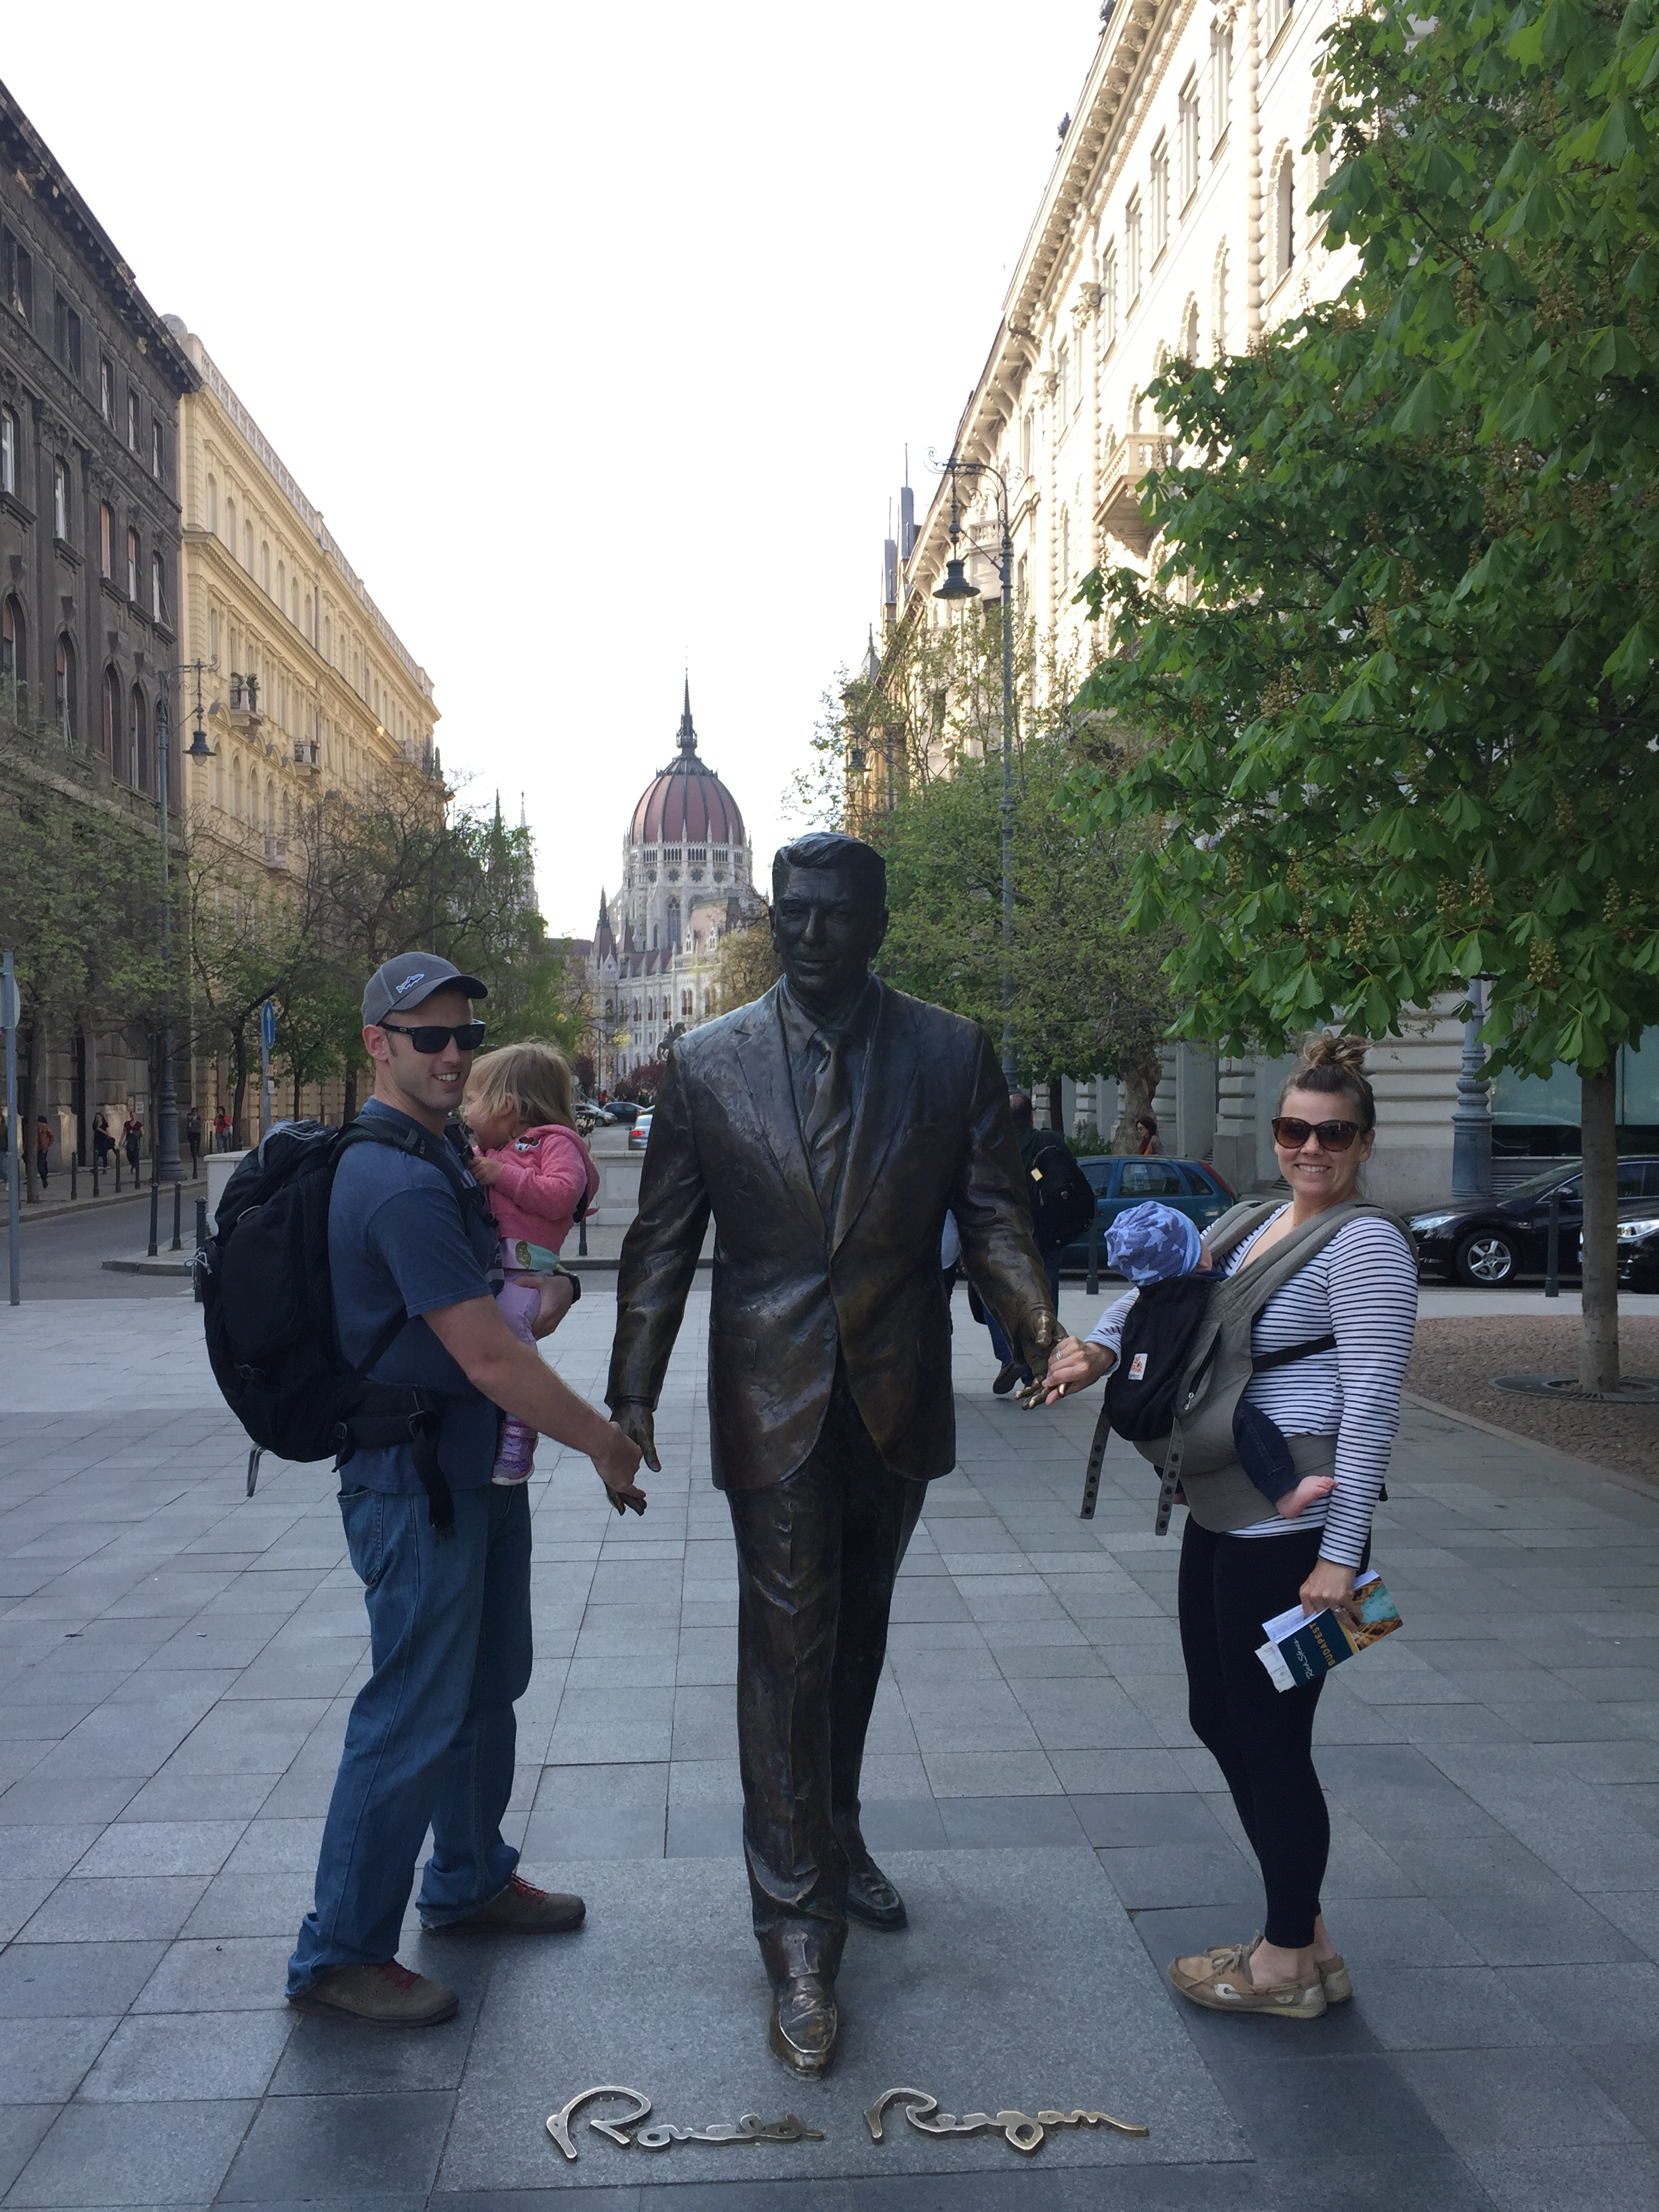 The Nomads posing with the Ronald Reagan Statue